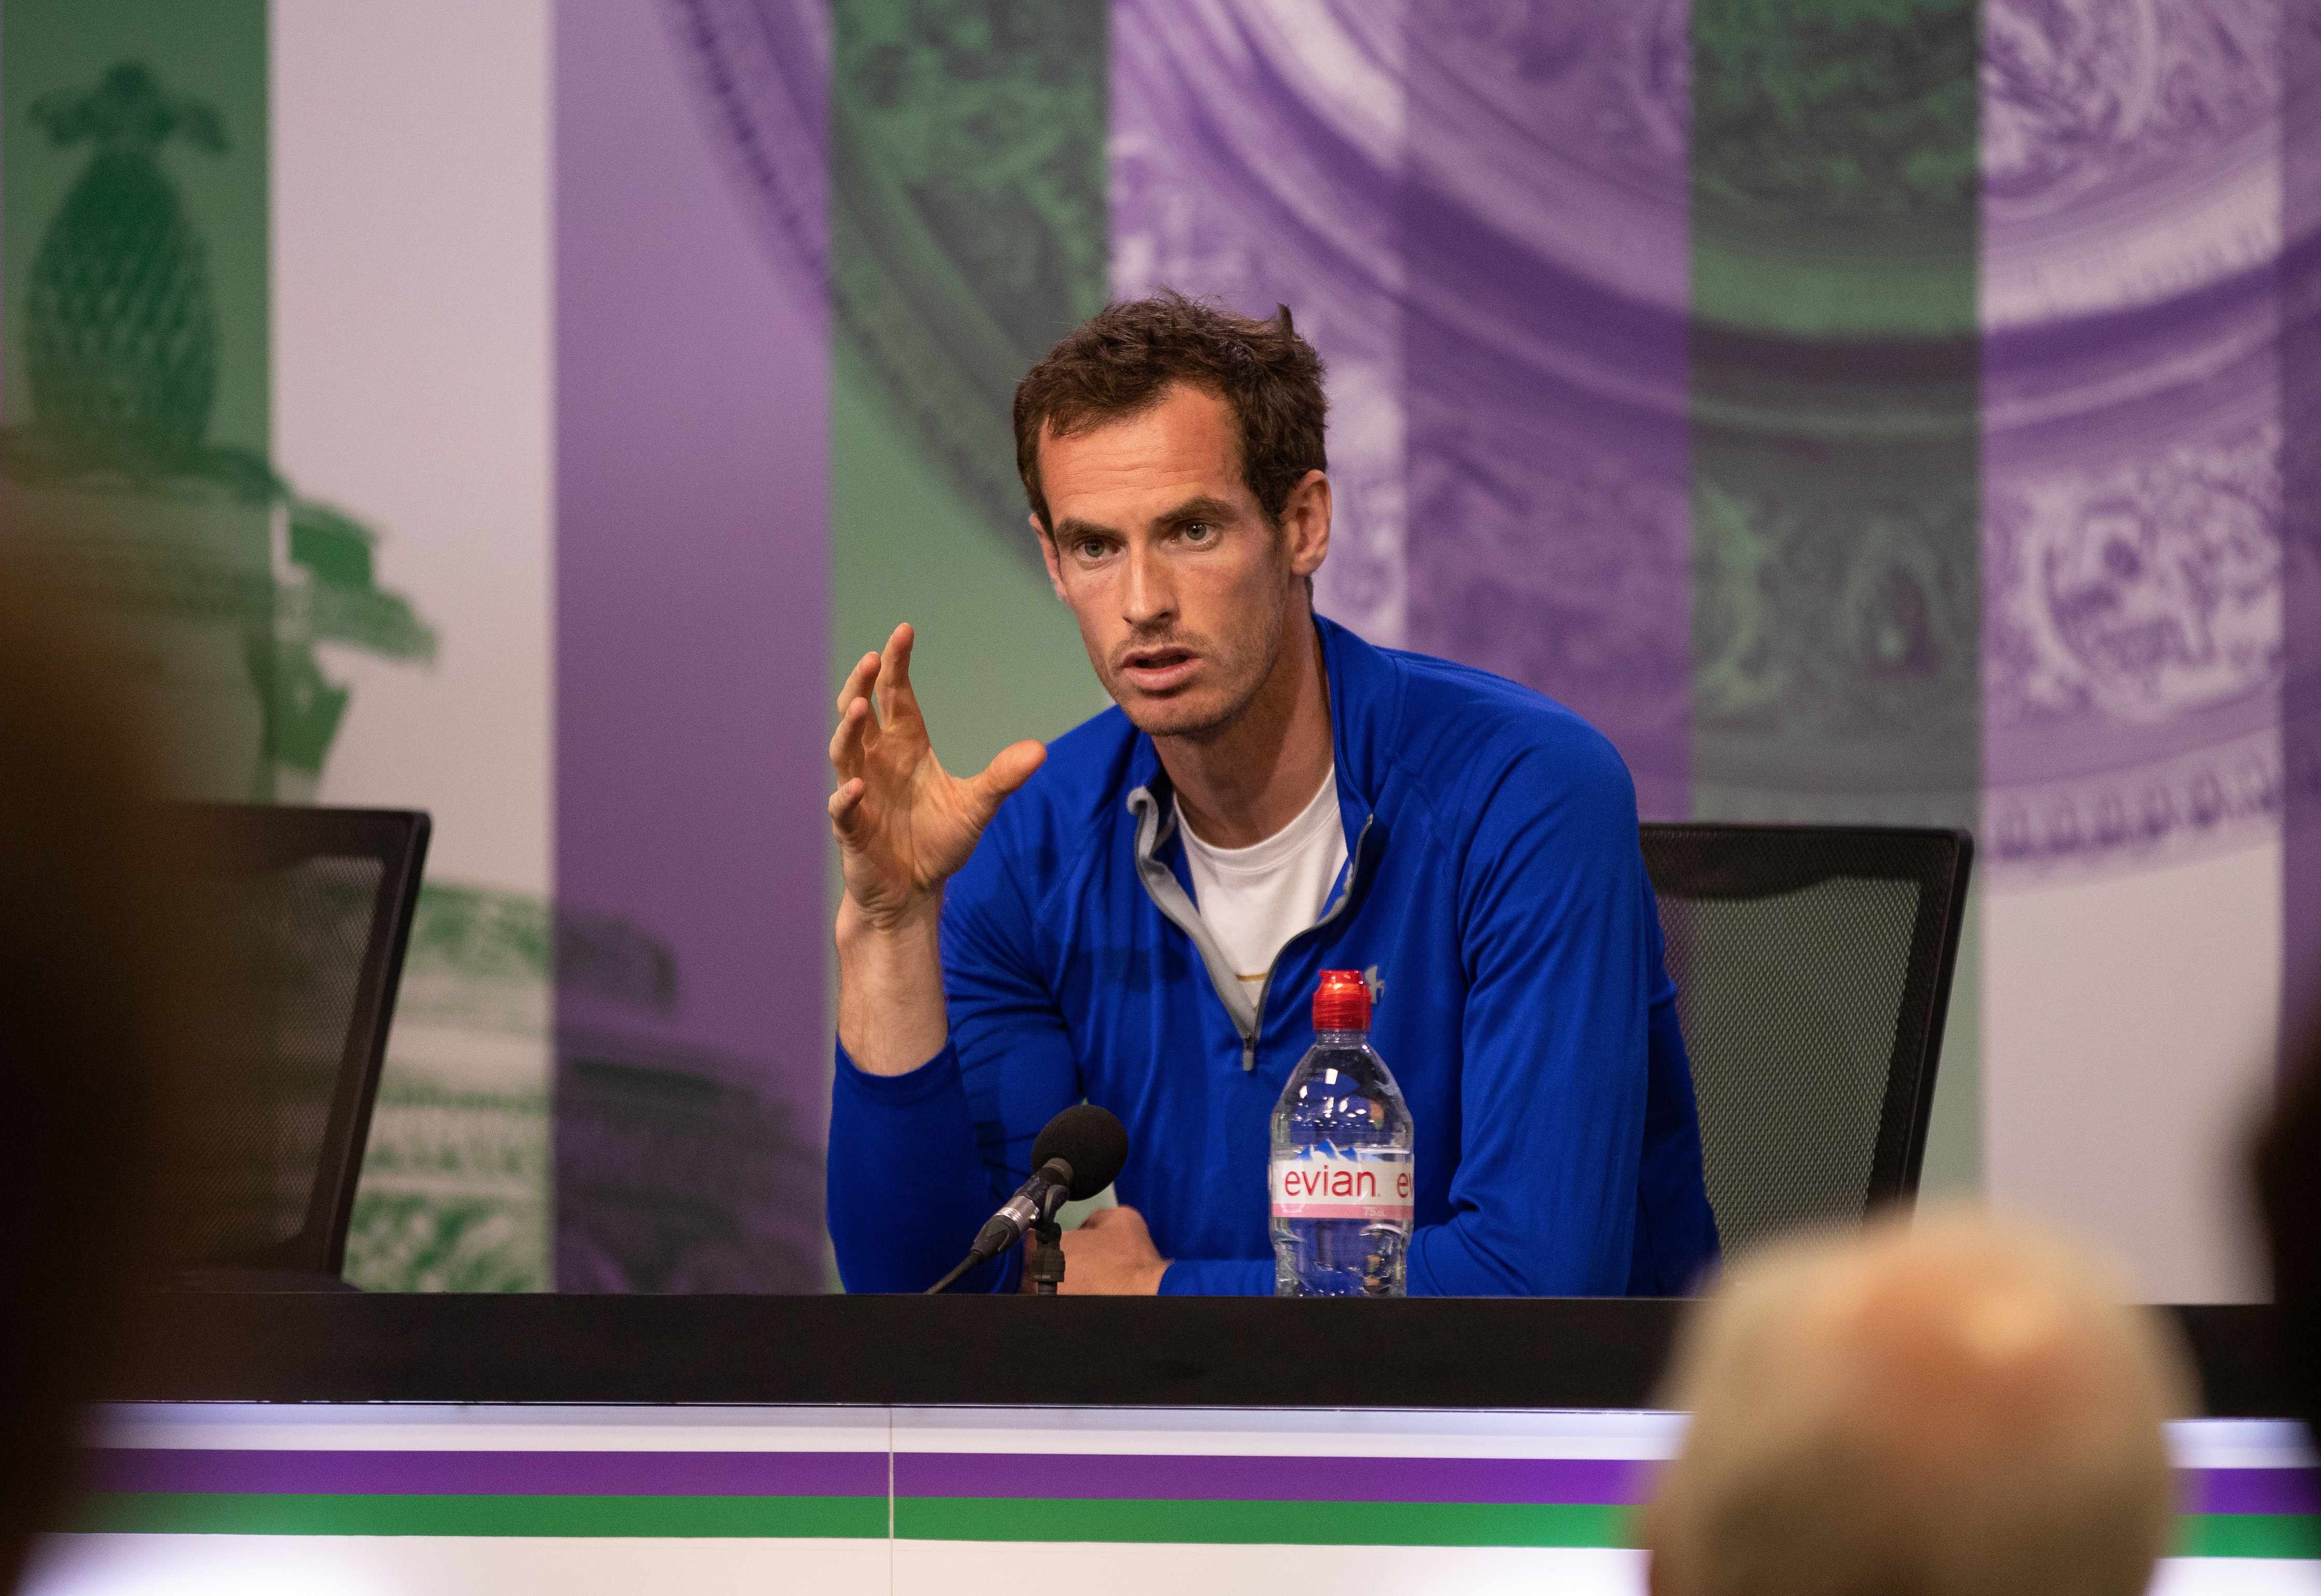 LONDON, ENGLAND - JUNE 30:  In this handout image provided by AELTC, Andy Murray GBR gives a Press Conference during the Wimbledon Lawn Tennis Championships at the All England Lawn Tennis and Croquet Club at Wimbledon on June 30, 2018 in London, England.  (Photo by AELTC/Ben Queenborough via Getty Images)  TL